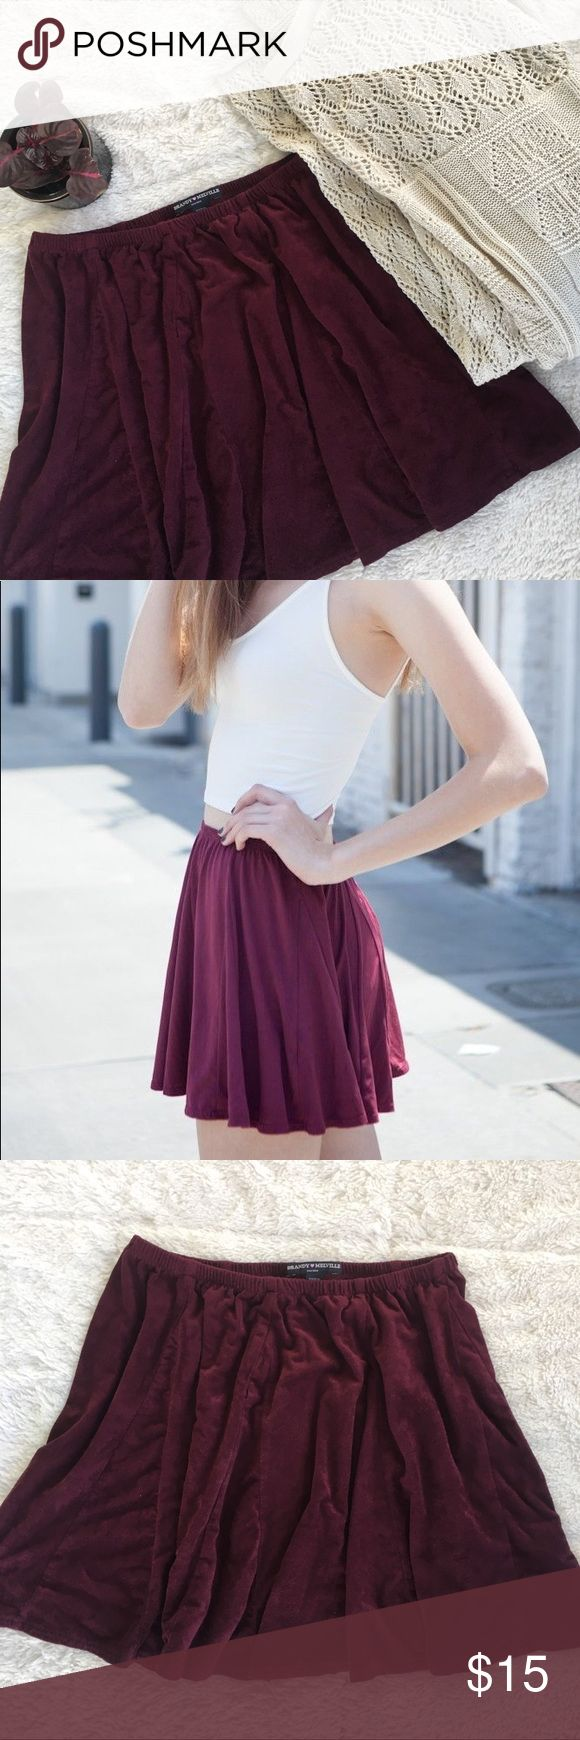 Brandy Melville Burgundy Suede Skater Skirt Worn once or twice, brandy melville dark burgundy skater skirt. Some photos from online picture it as a lighter color, but it is the dark burgundy mainly pictures. Very pretty color with no stains or rips. From a smoke free home. Brandy Melville Skirts Mini